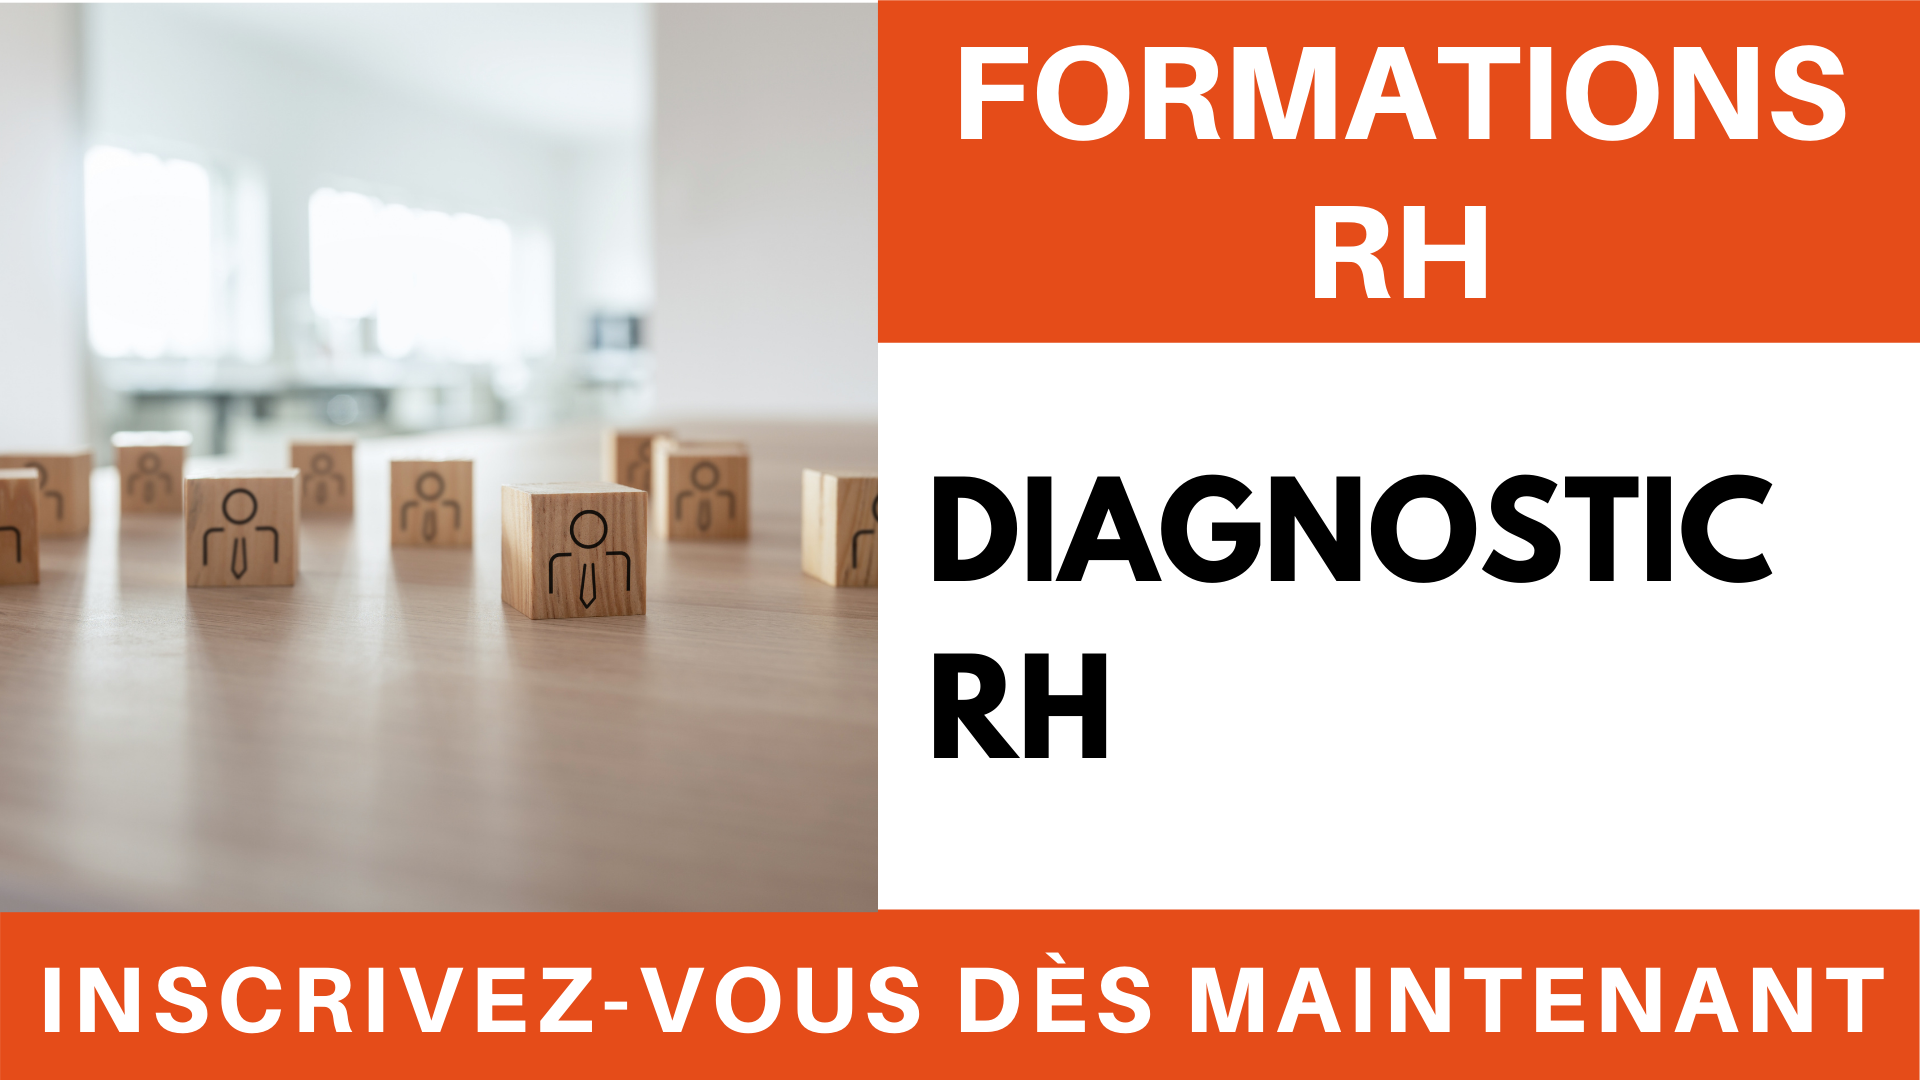 Formation RH - diagnostic rh